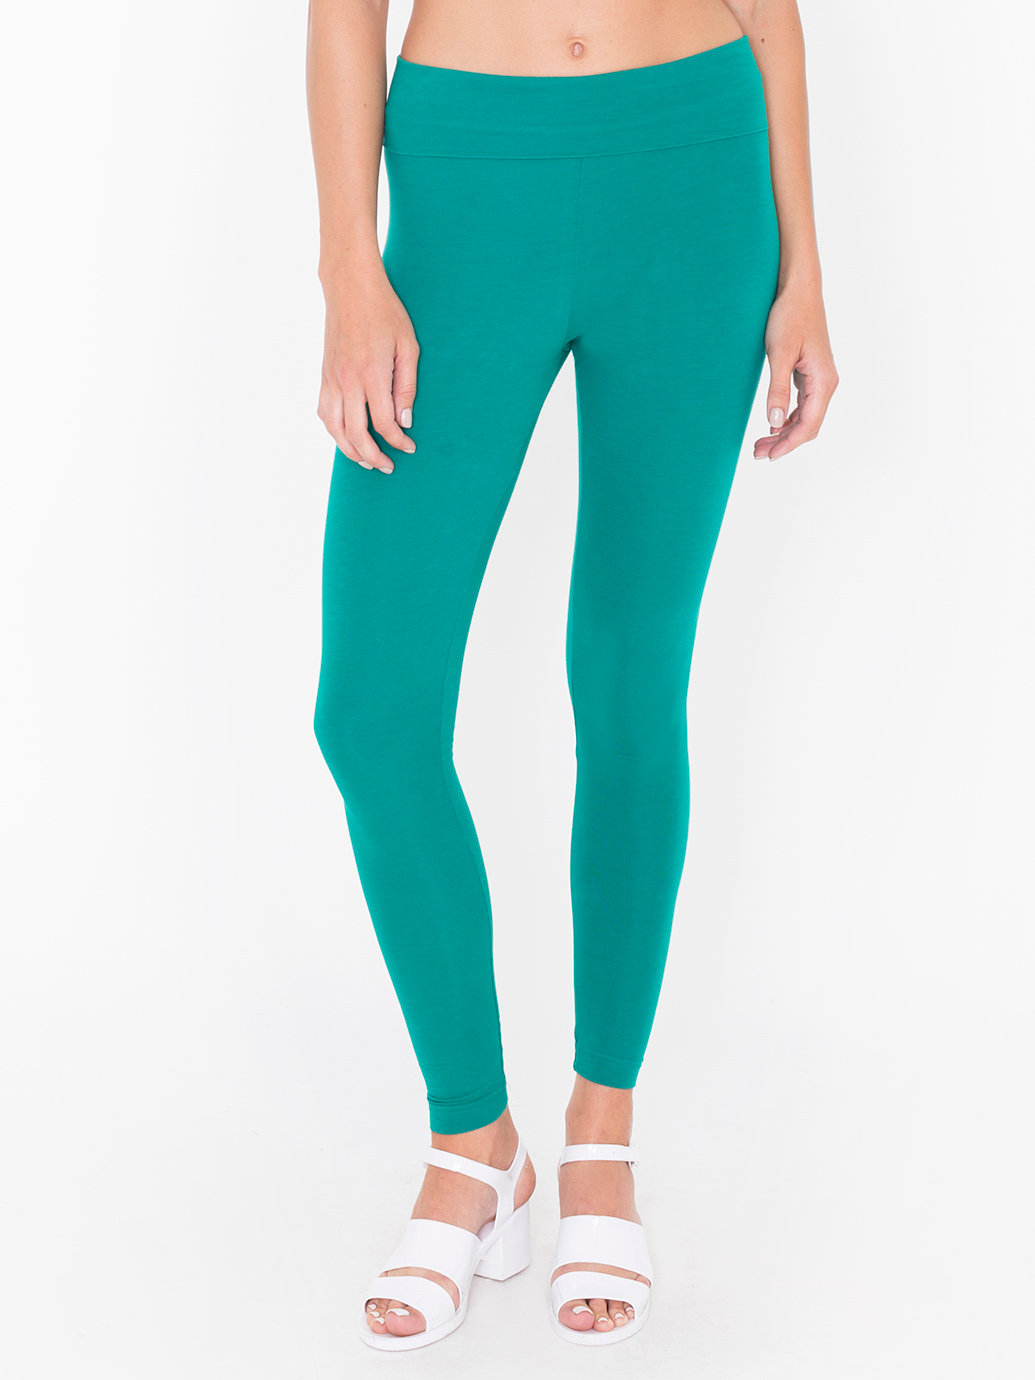 High Waisted Spandex Leggings - Baggage Clothing